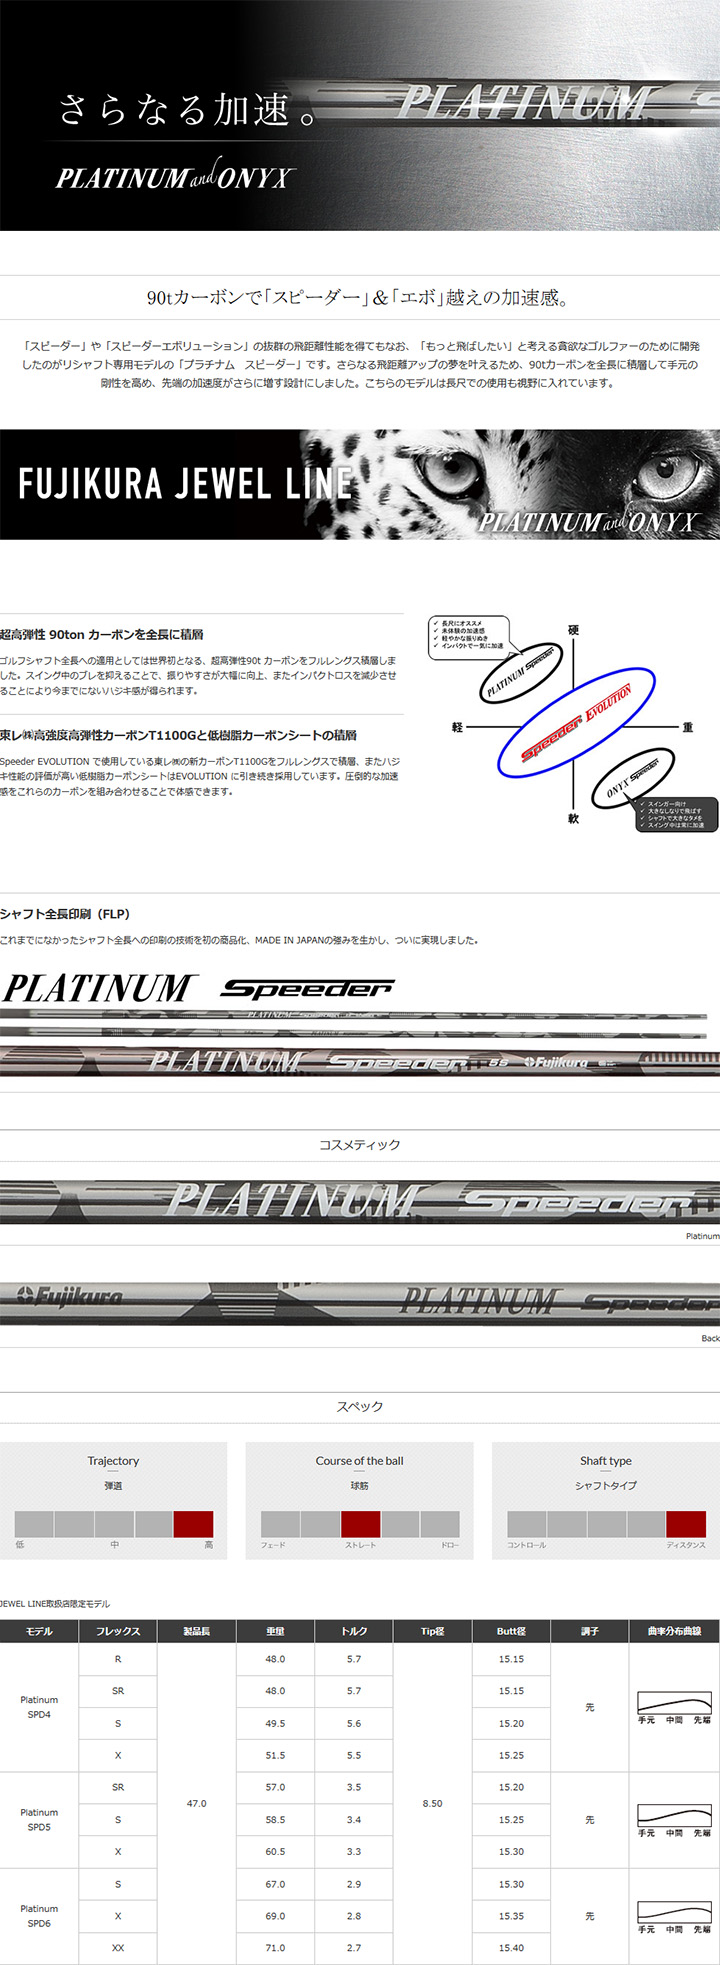 PLATINUM Speeder